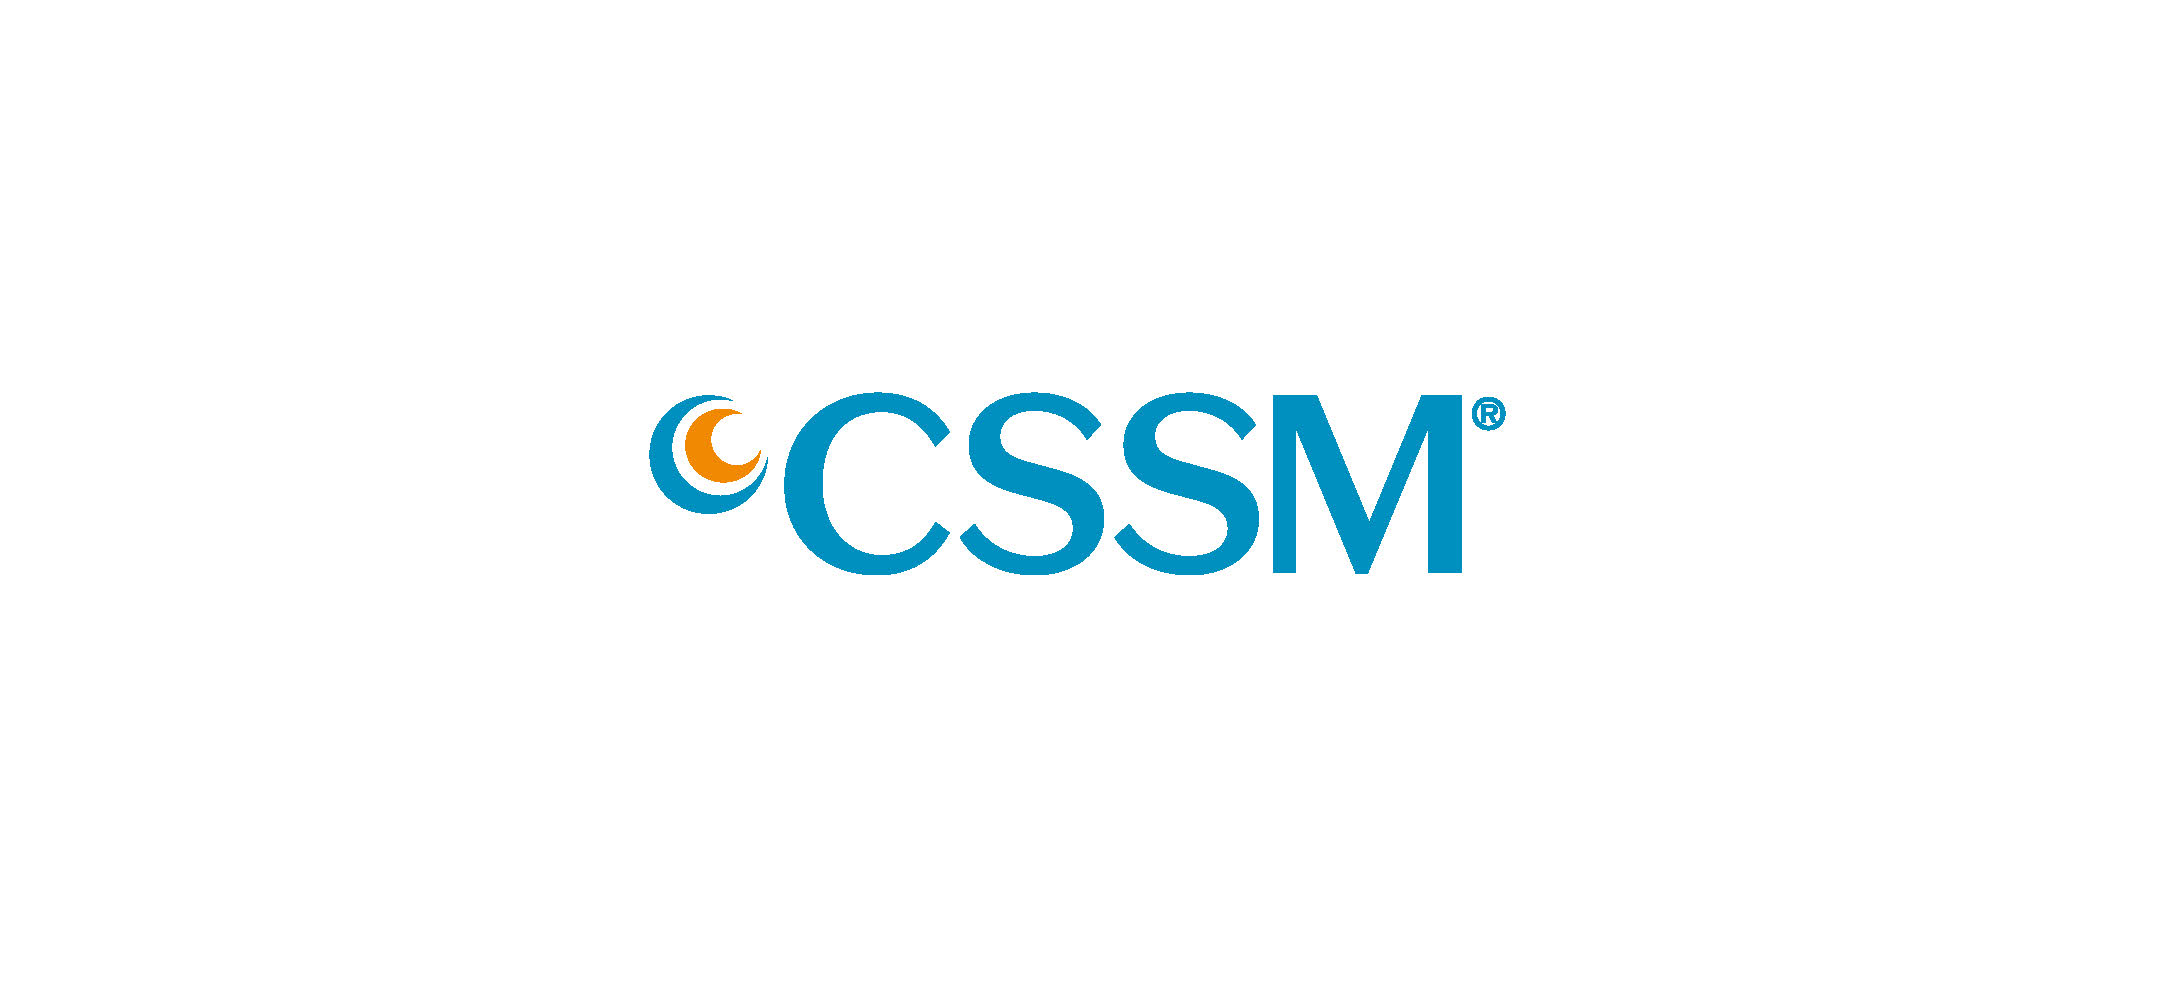 Get to Know CSSM